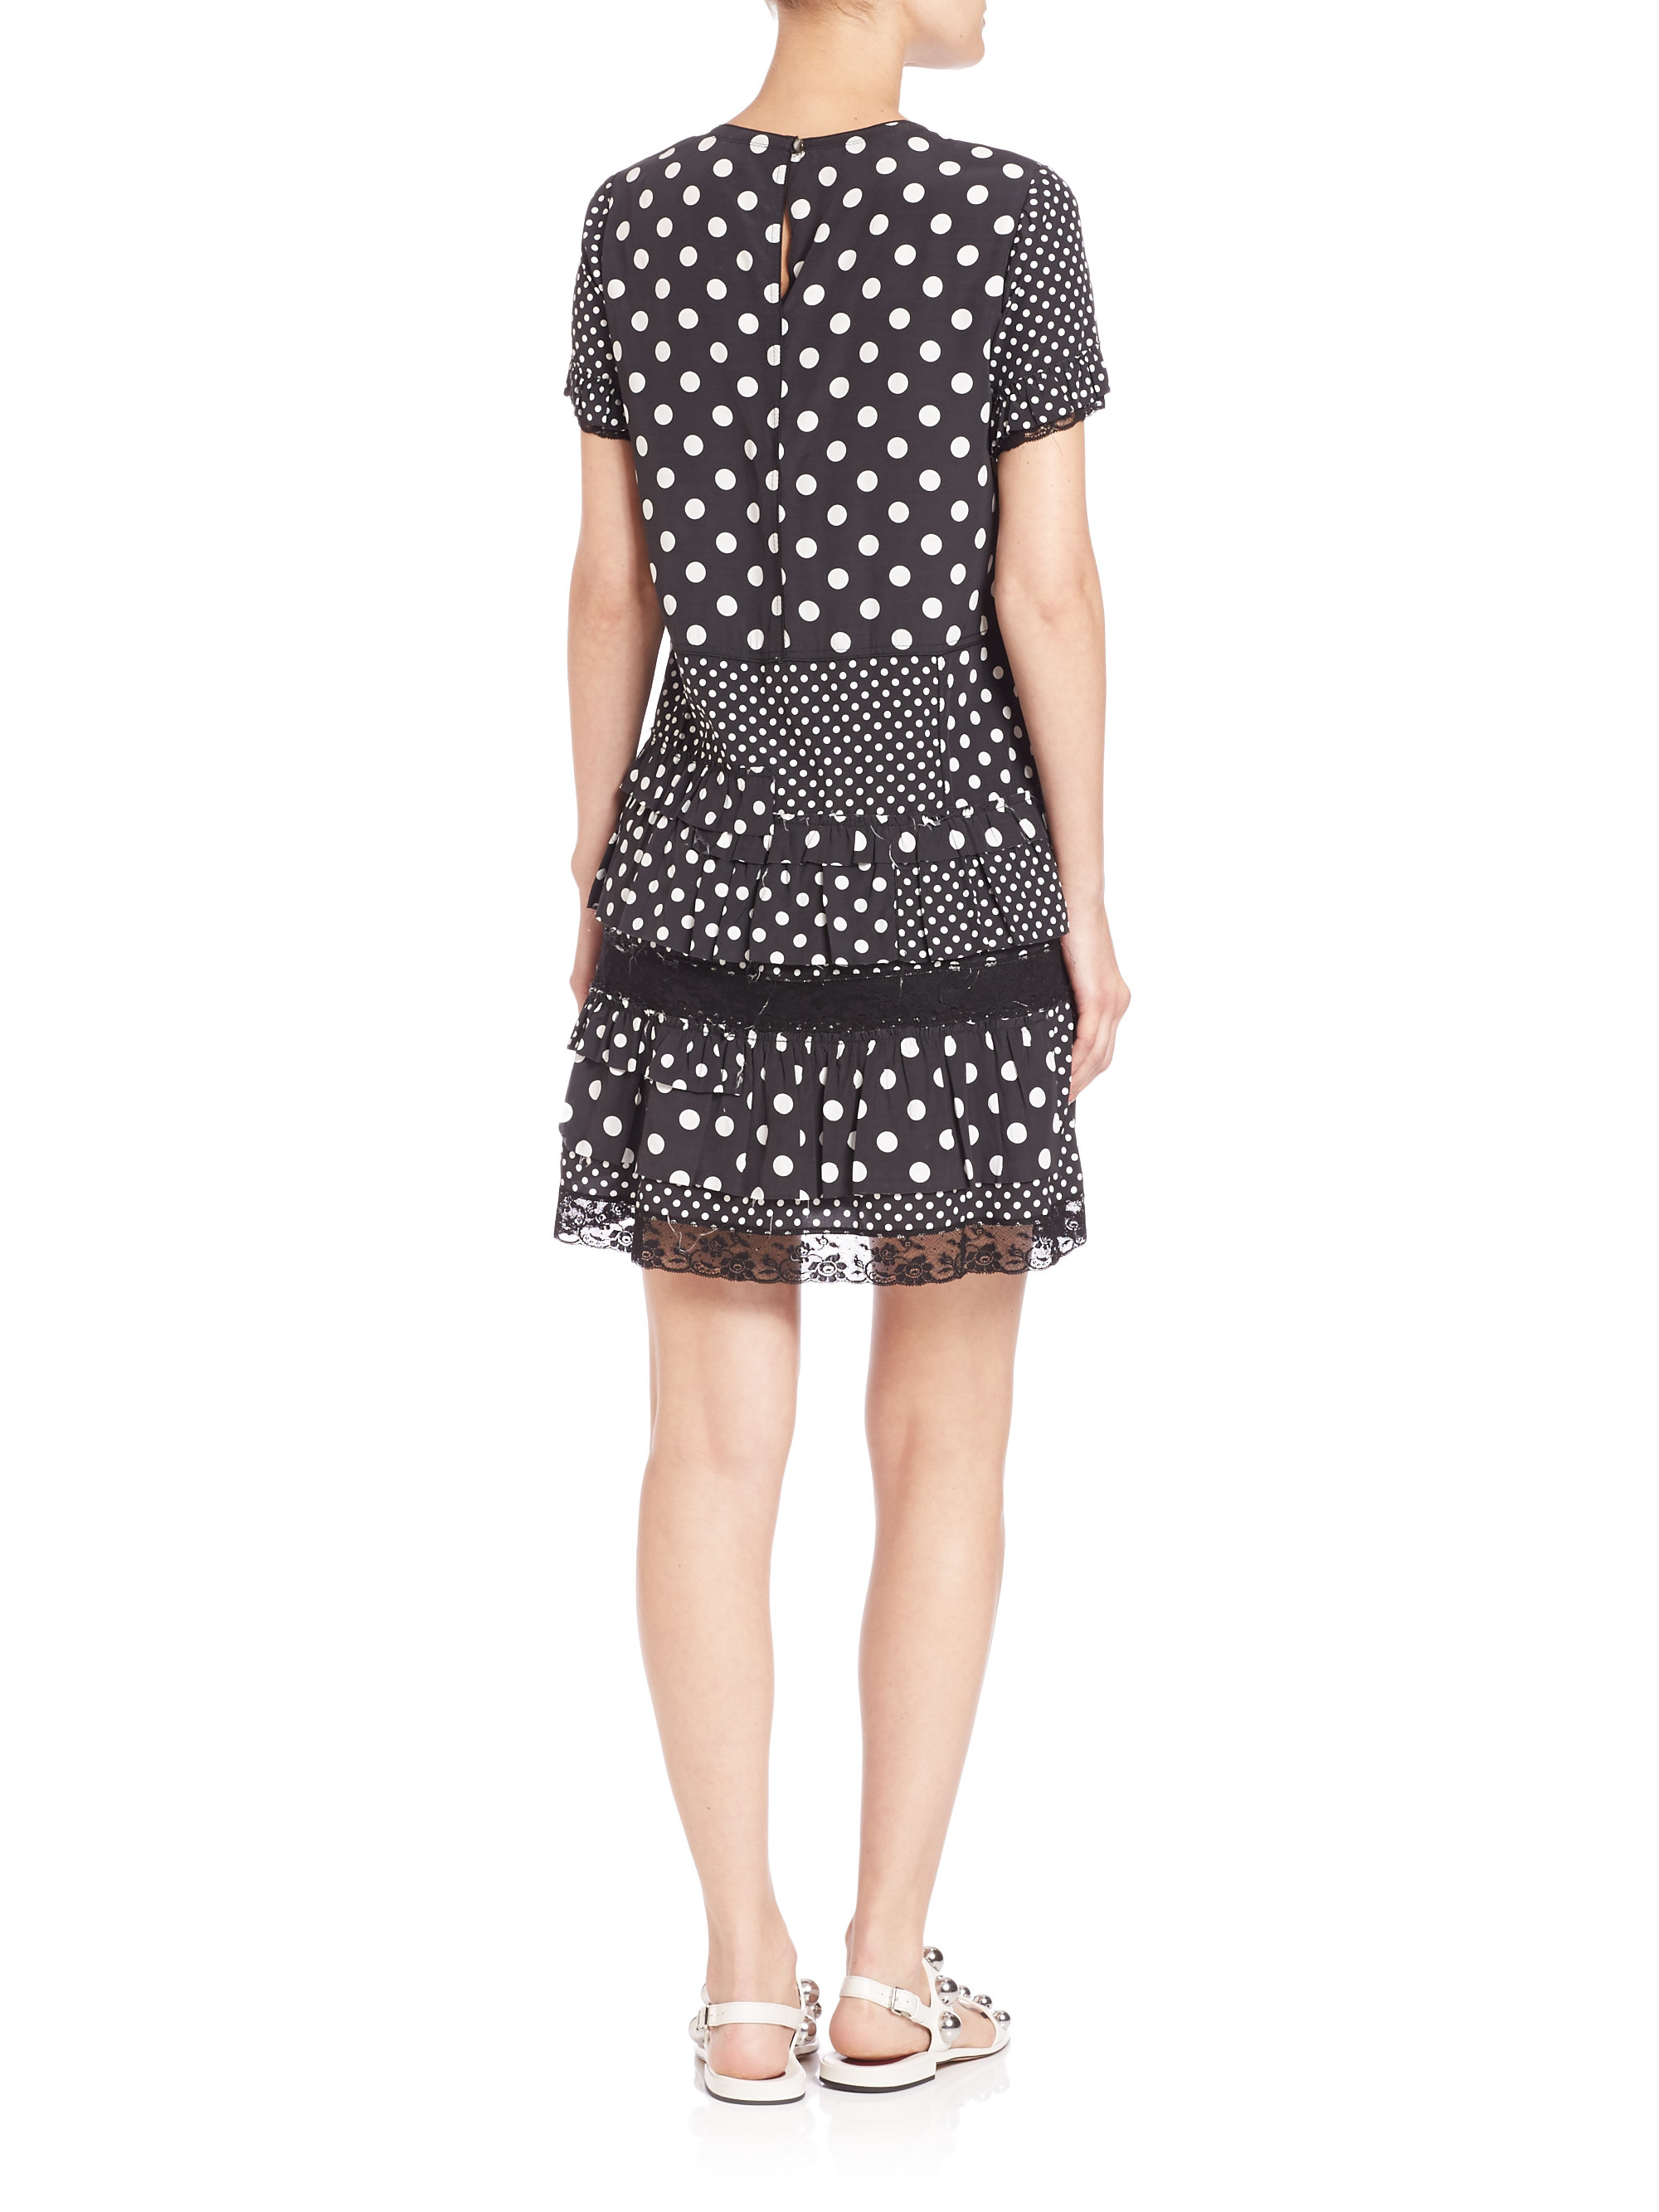 Free Shipping Shop Offer Marc Jacobs lace-trim polka dots dress Pick A Best Cheap Get To Buy zLjSSk